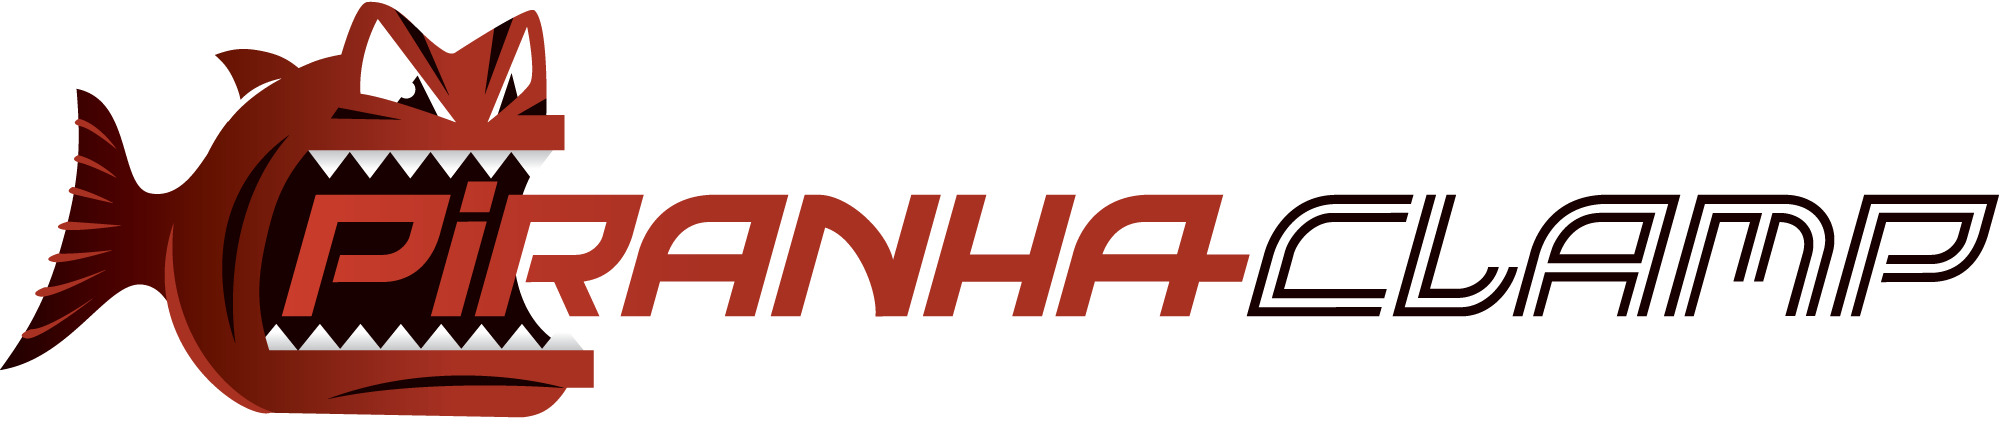 Piranha Clamp Logo.png